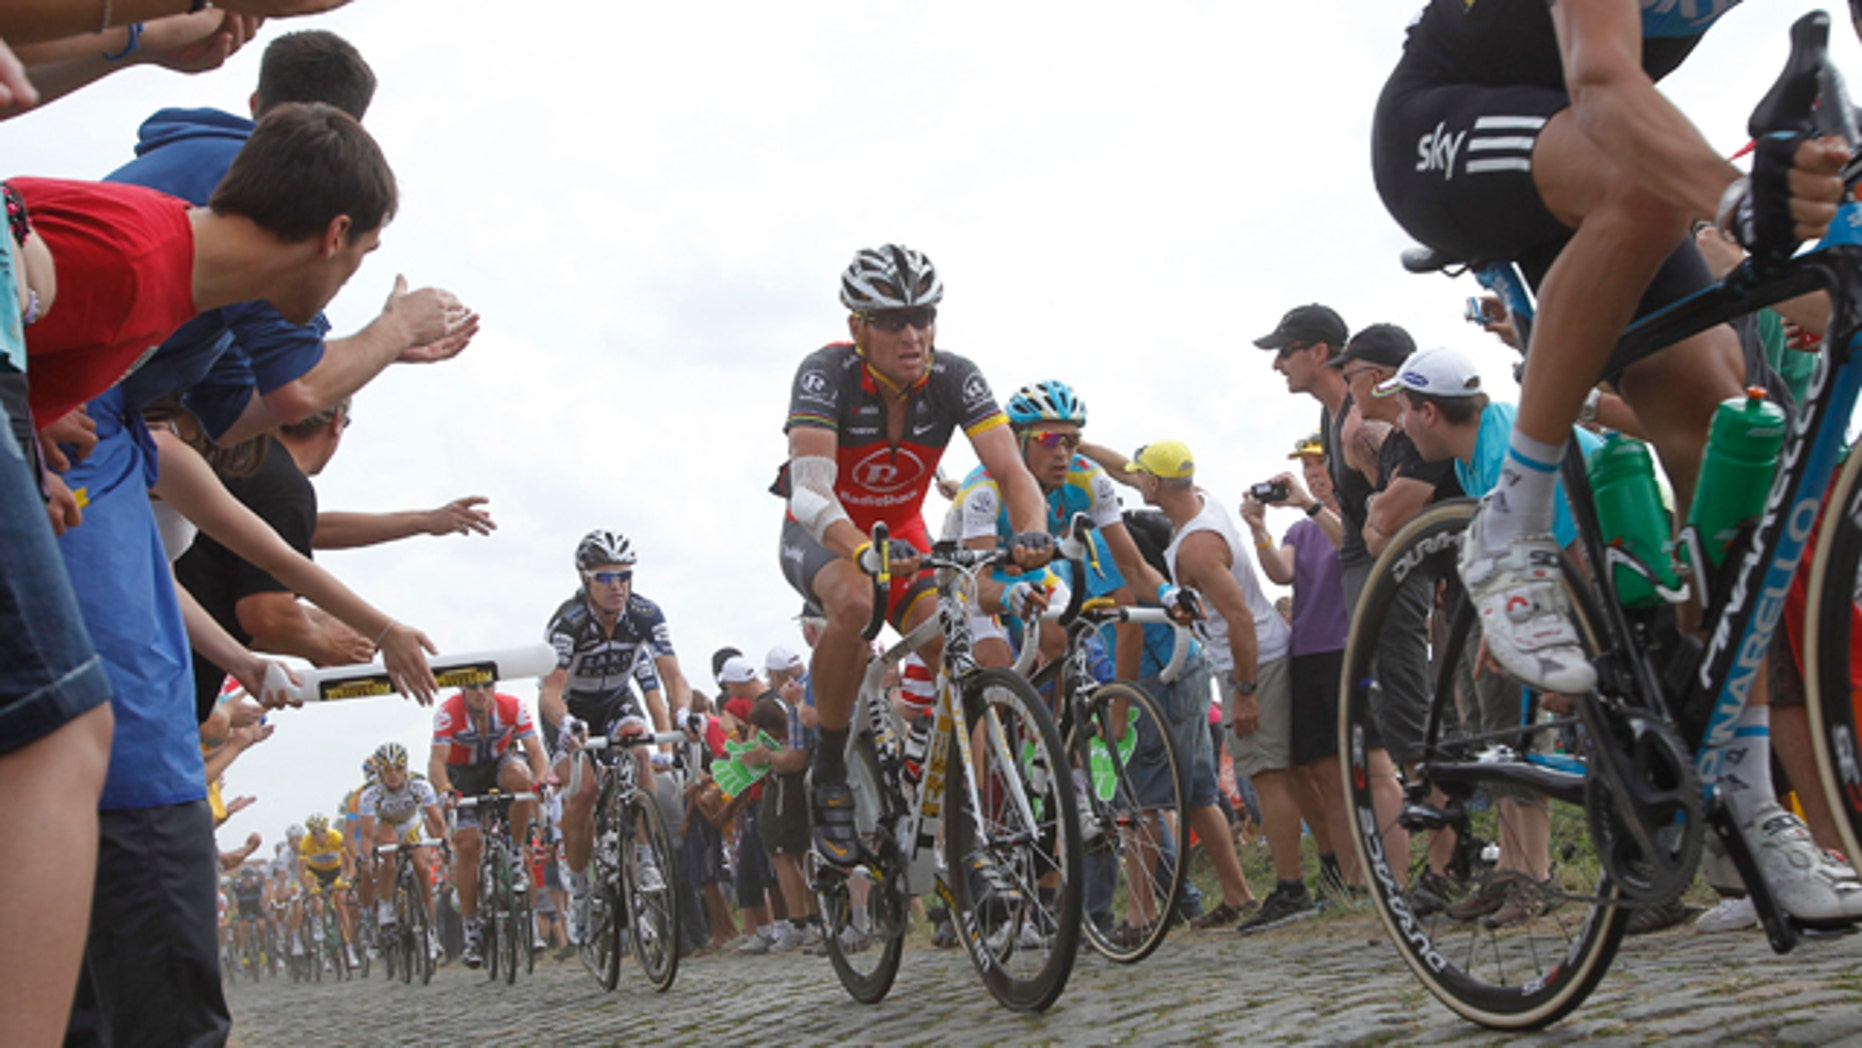 July 6: Lance Armstrong, center, and Alberto Contador of Spain, right of Armstrong, ride on a cobblestone section during the third stage of the Tour de France cycling race over 132.4 miles with start in Wanze, Belgium and finish in Arenberg, France.